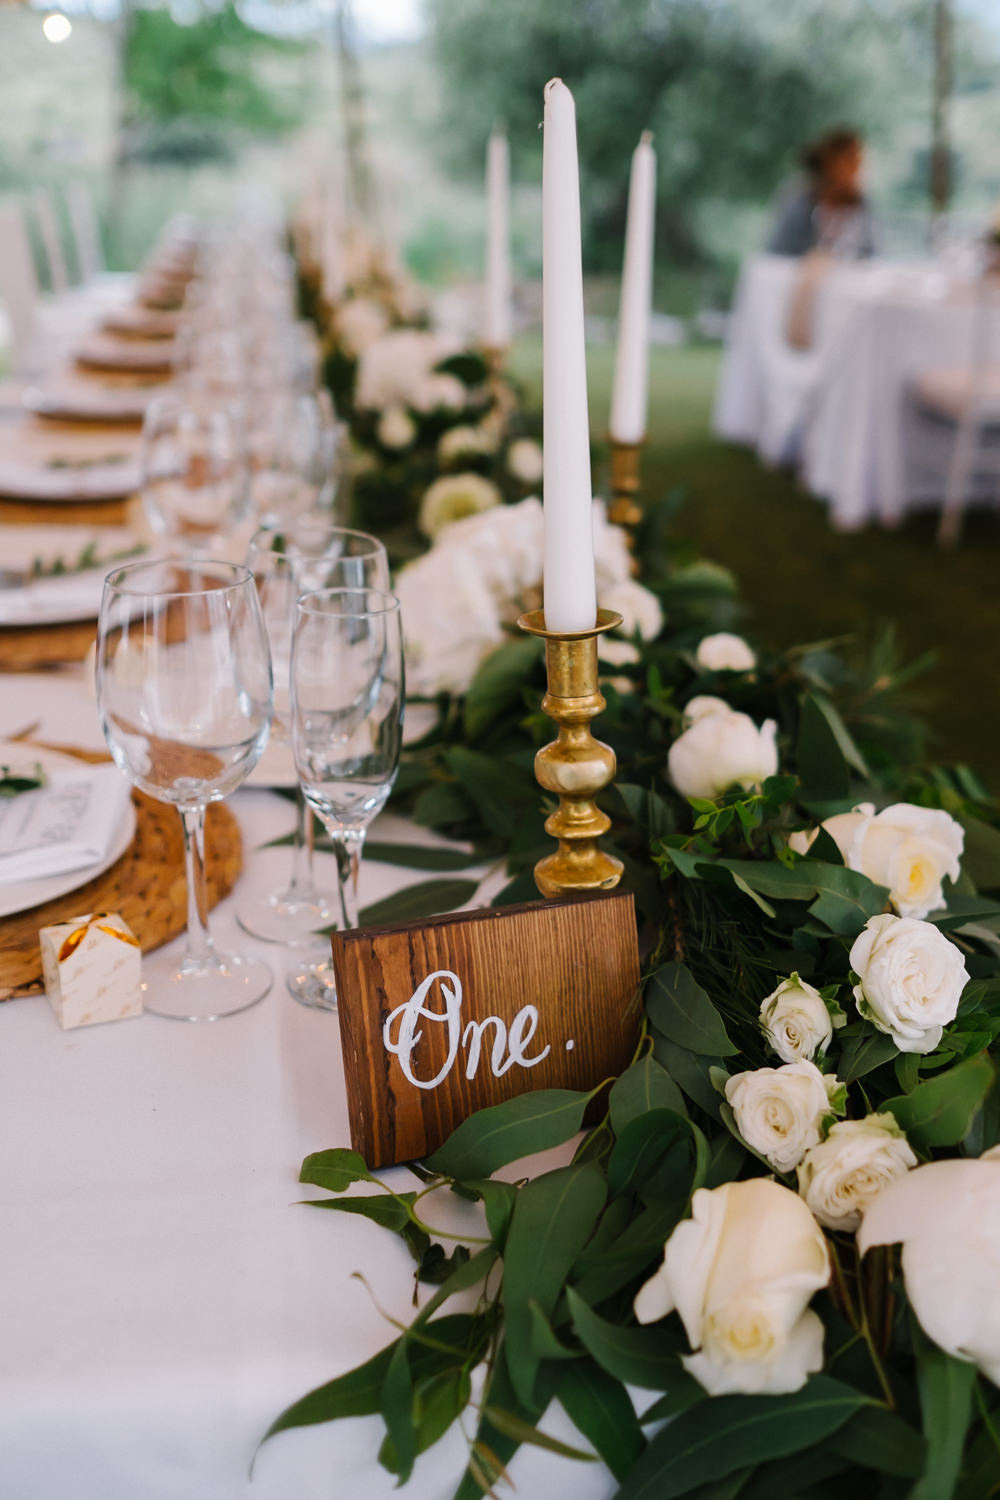 Greenery Foliage Table Centrepiece Runner Decor Runner Garland Swag Candles Spain Destination Wedding Jesus Caballero Photography